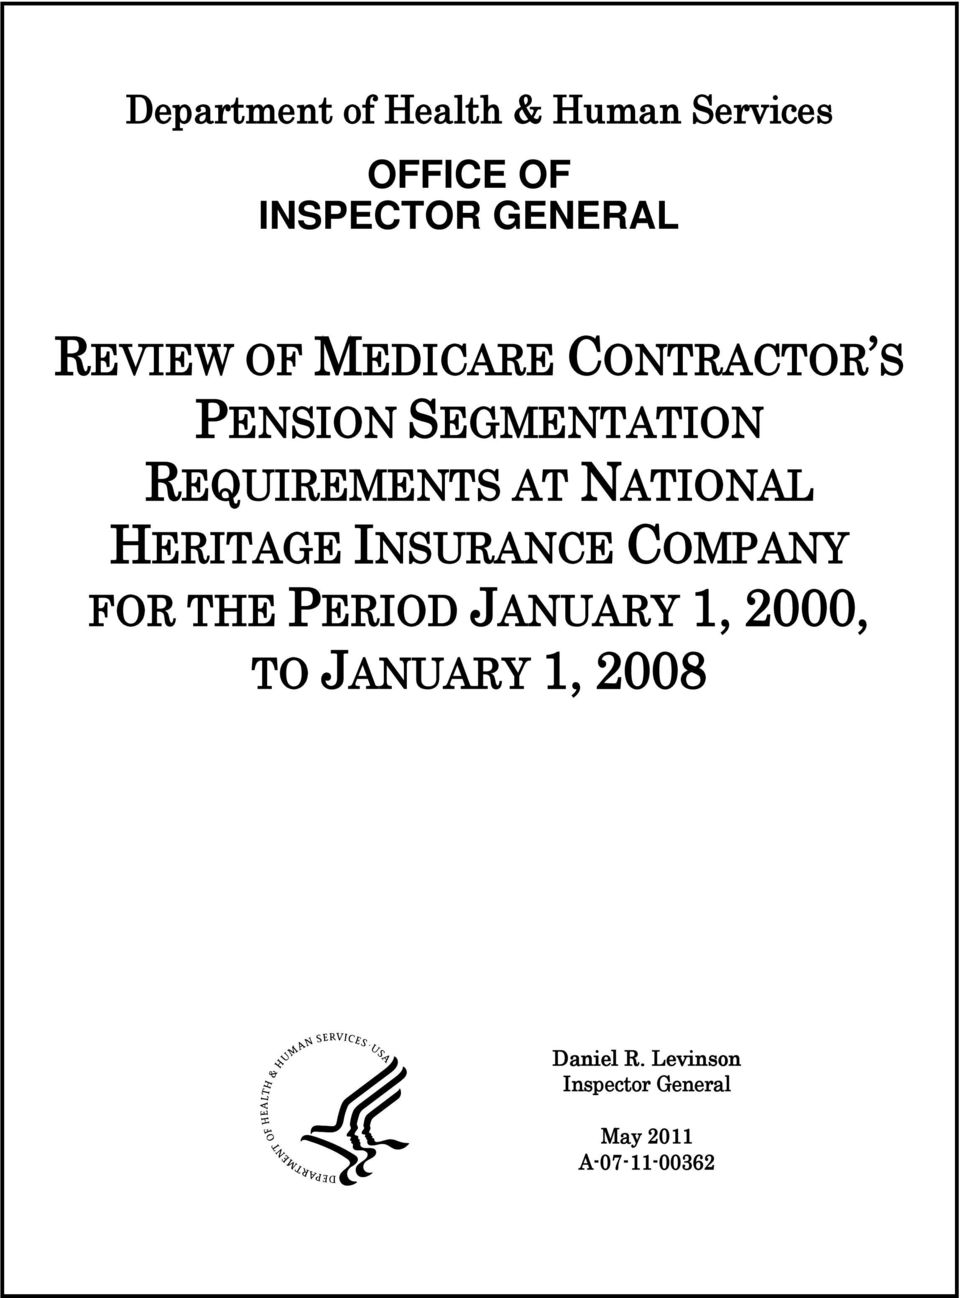 NATIONAL HERITAGE INSURANCE COMPANY FOR THE PERIOD JANUARY 1, 2000, TO